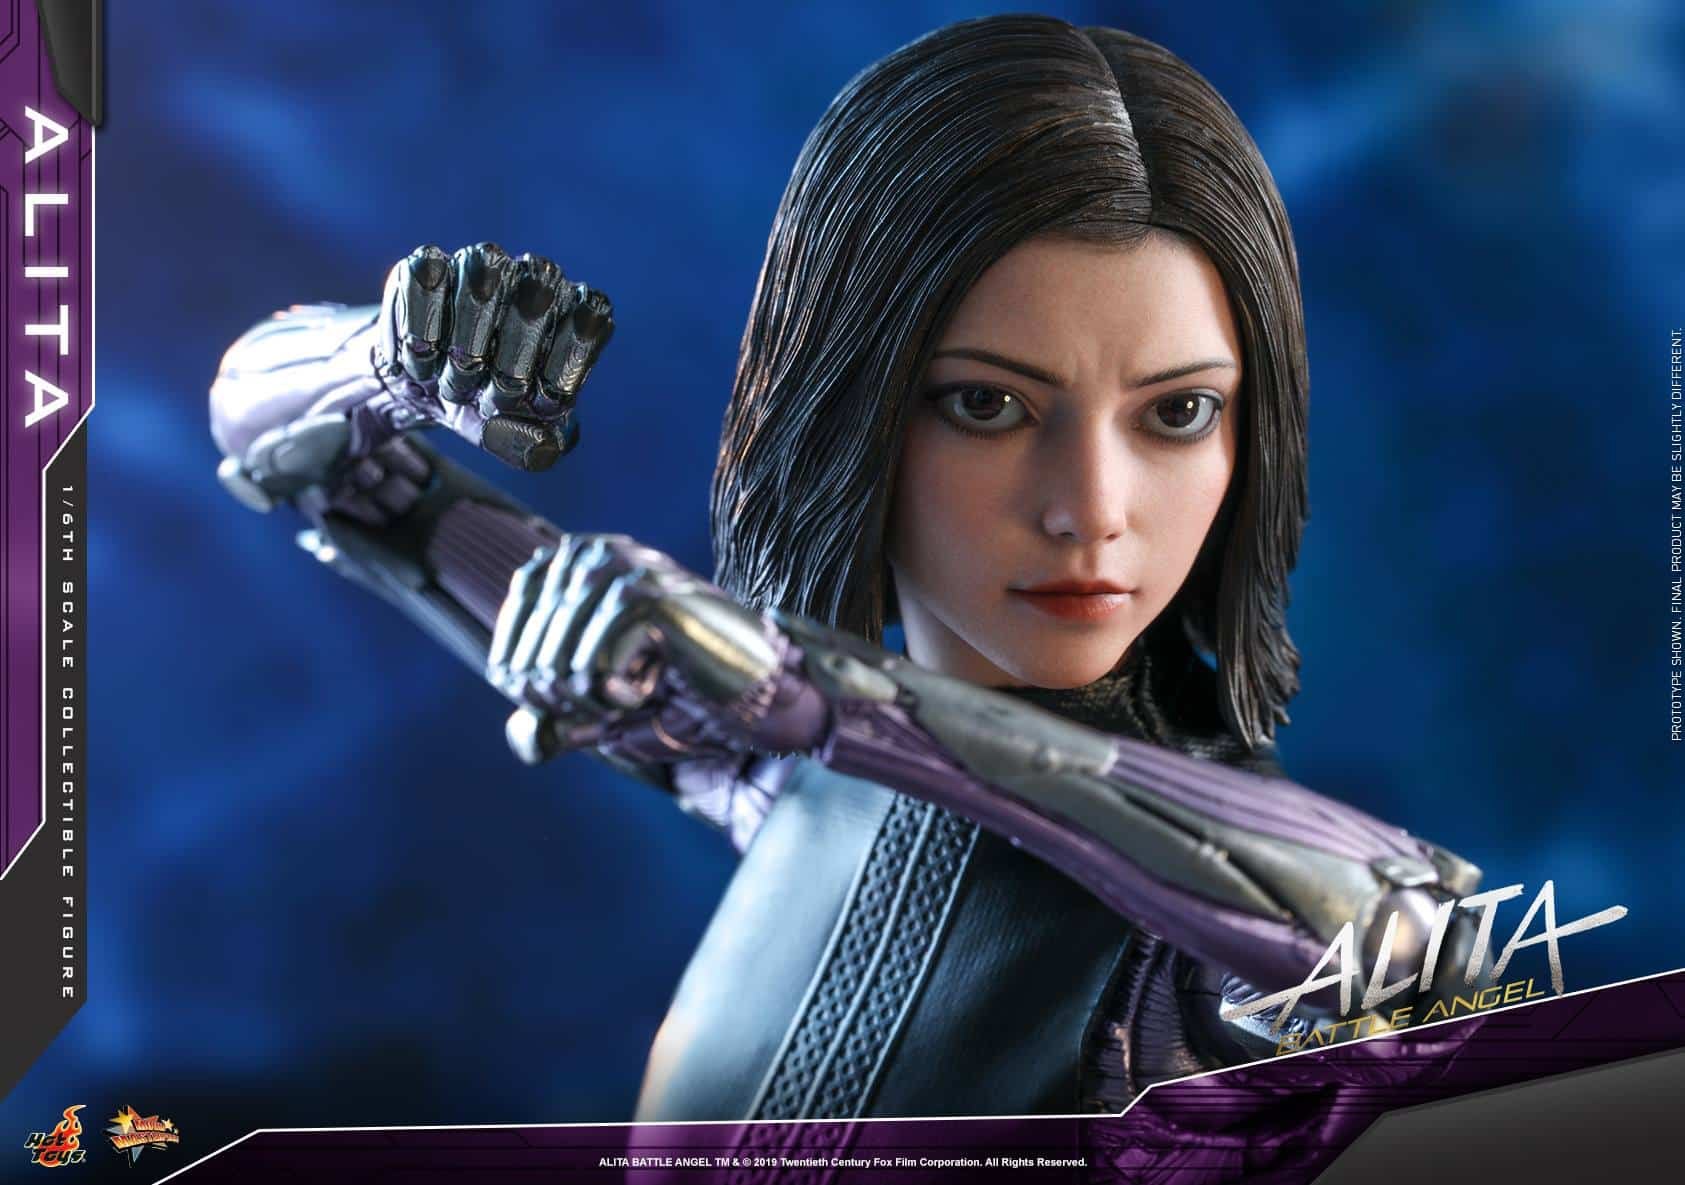 Angelfist alita: battle angel gets her very own hot toys release next